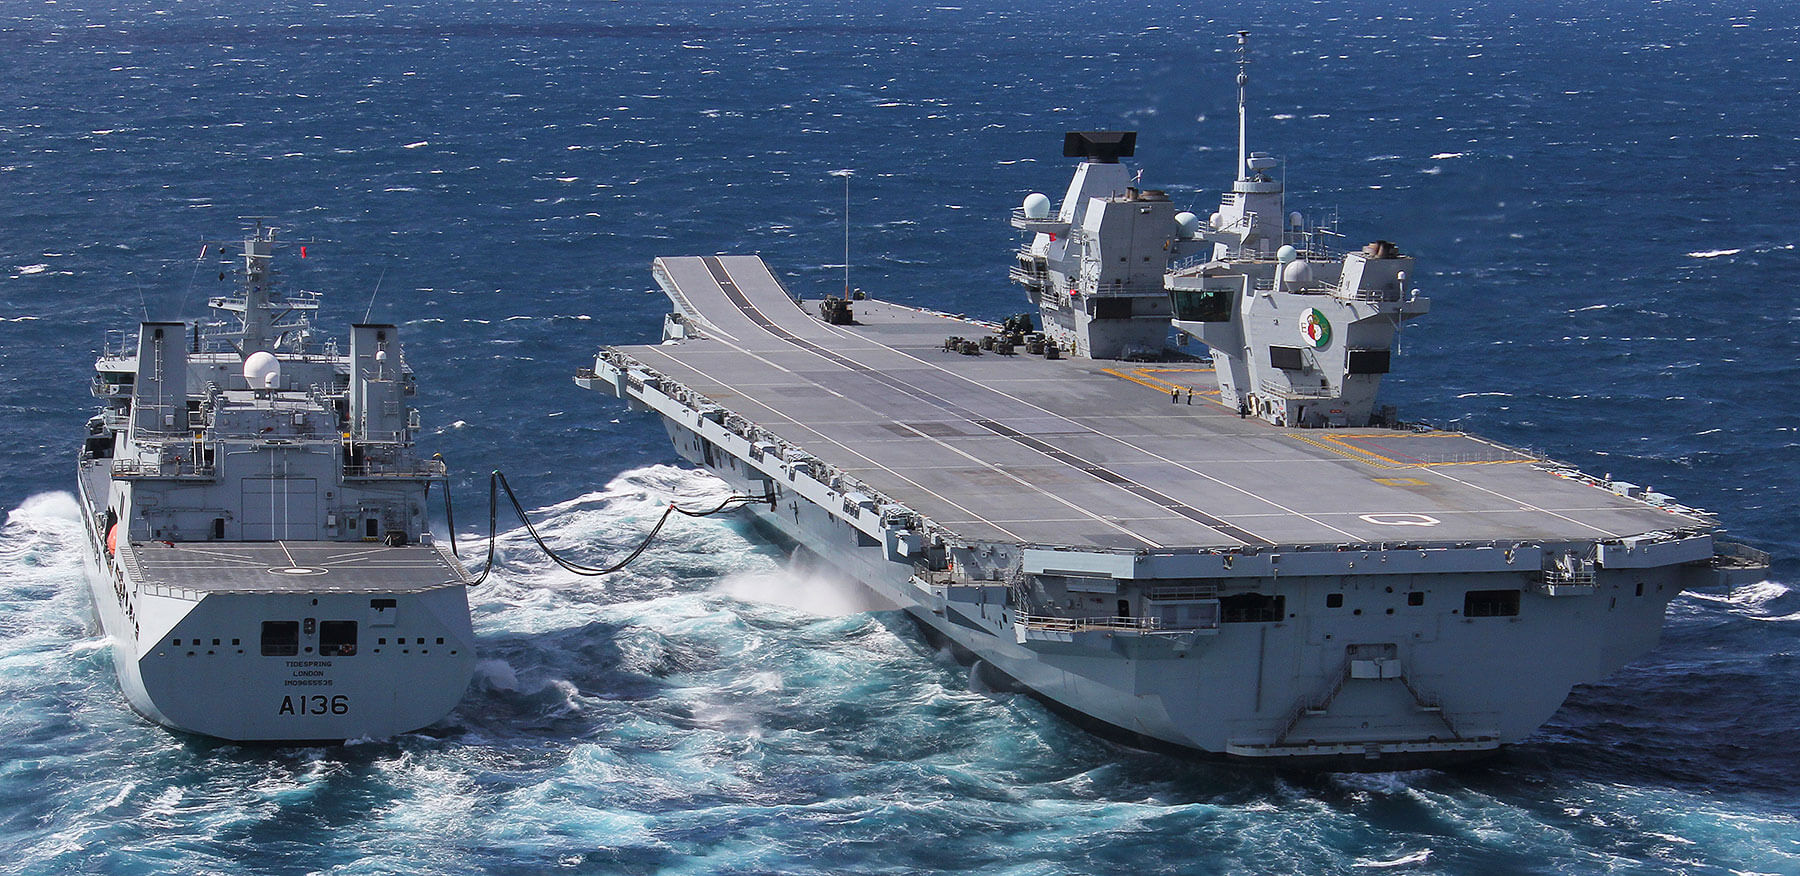 RFA Tidespring conducts the first trial refuelling of HMS Queen Elizabeth